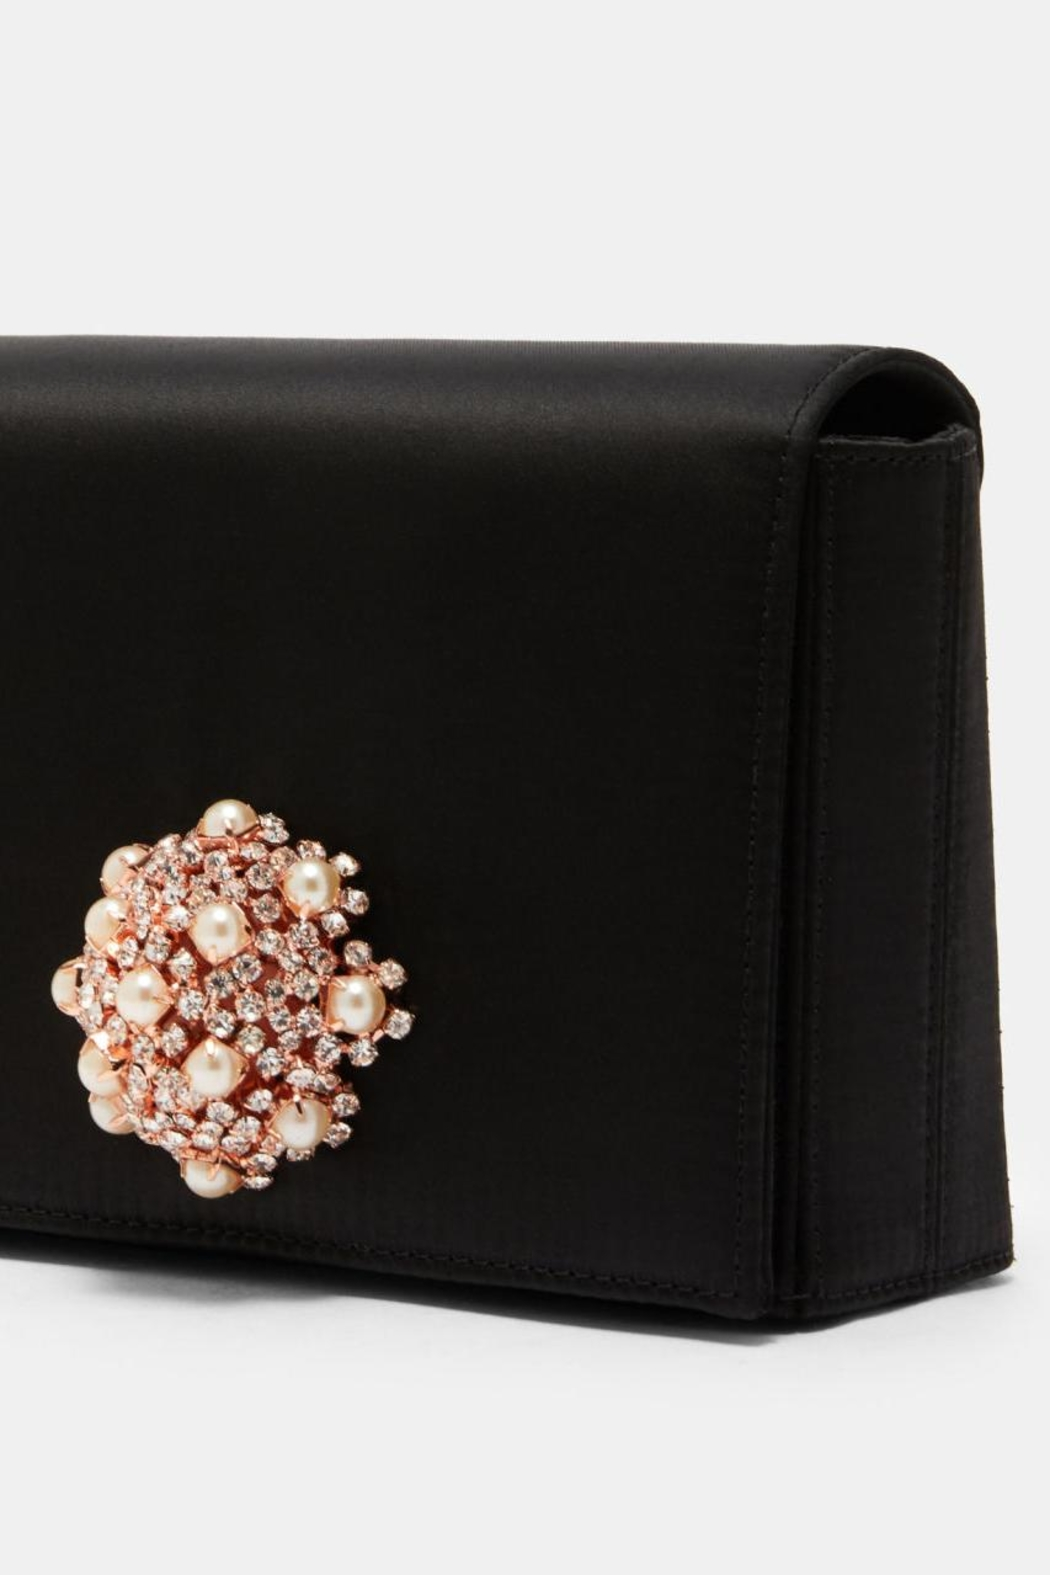 93b7276ff98 Ted Baker Brooch Evening Bag from New Jersey by Chelsea Gifts ...